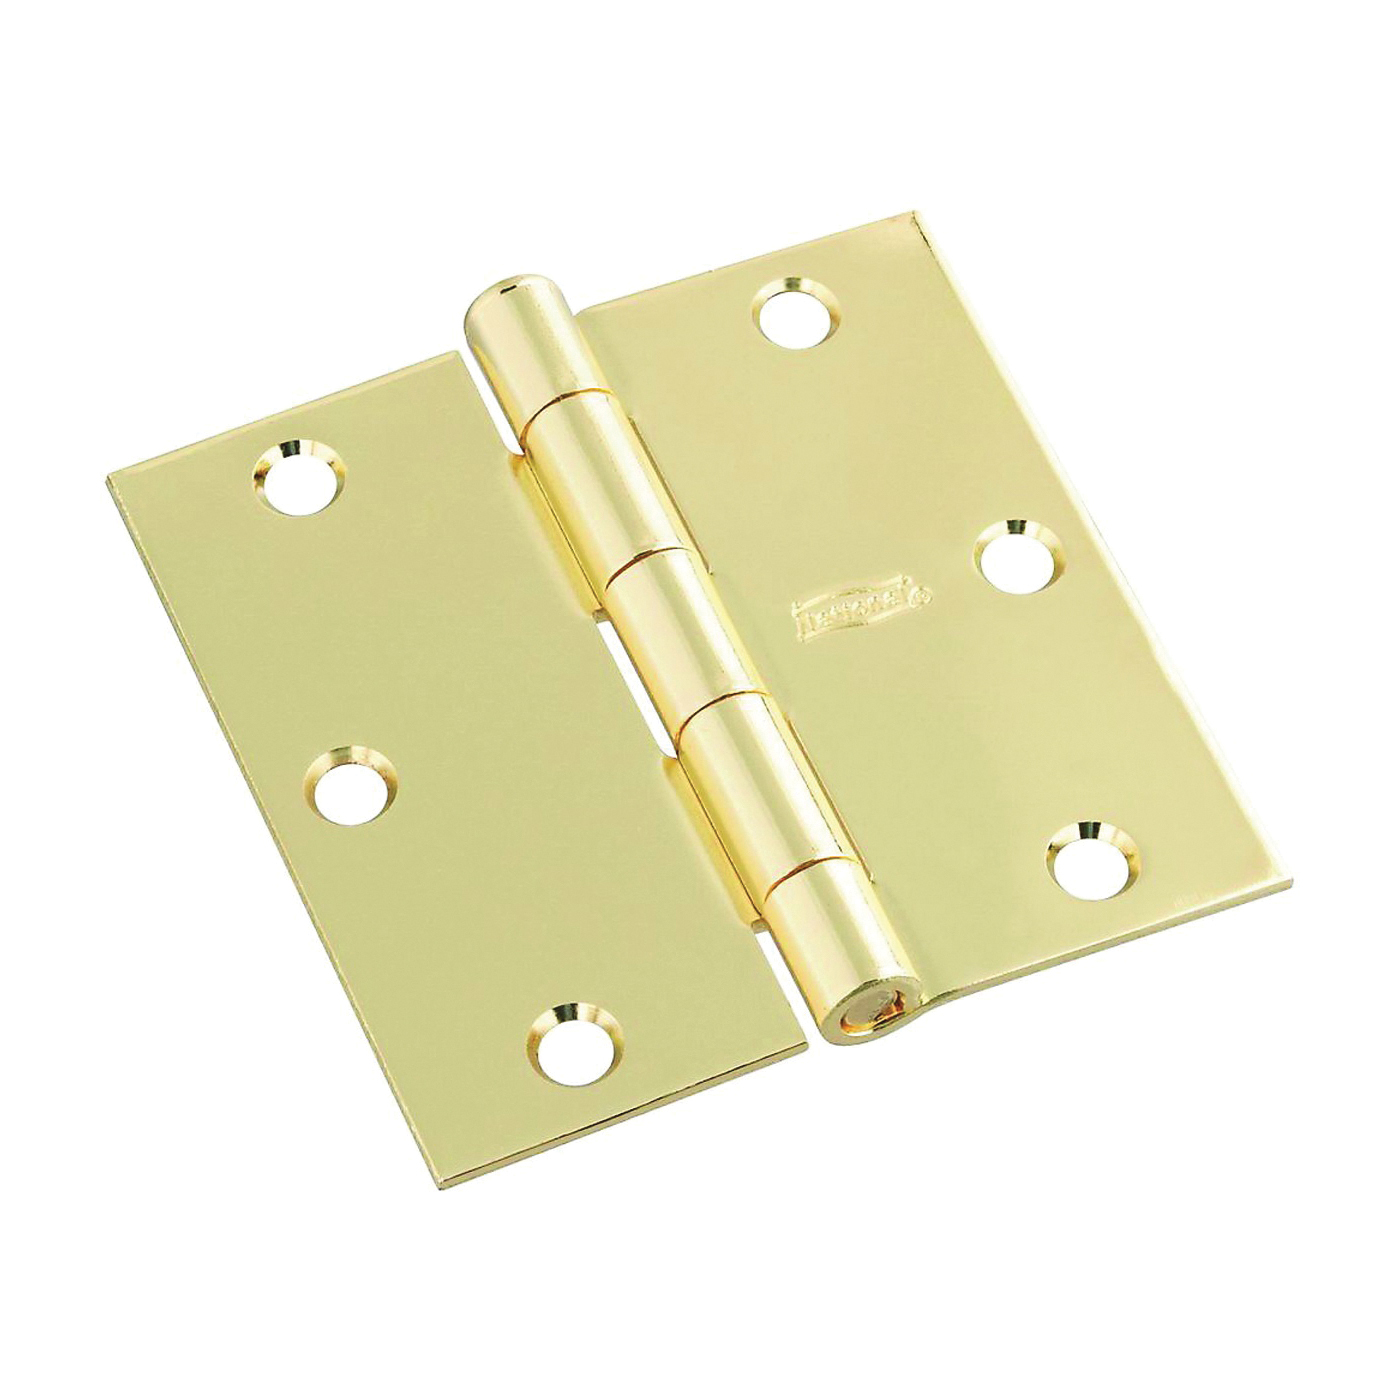 Picture of National Hardware N830-212 Door Hinge, Cold Rolled Steel, Polished Brass, Full-Mortise Mounting